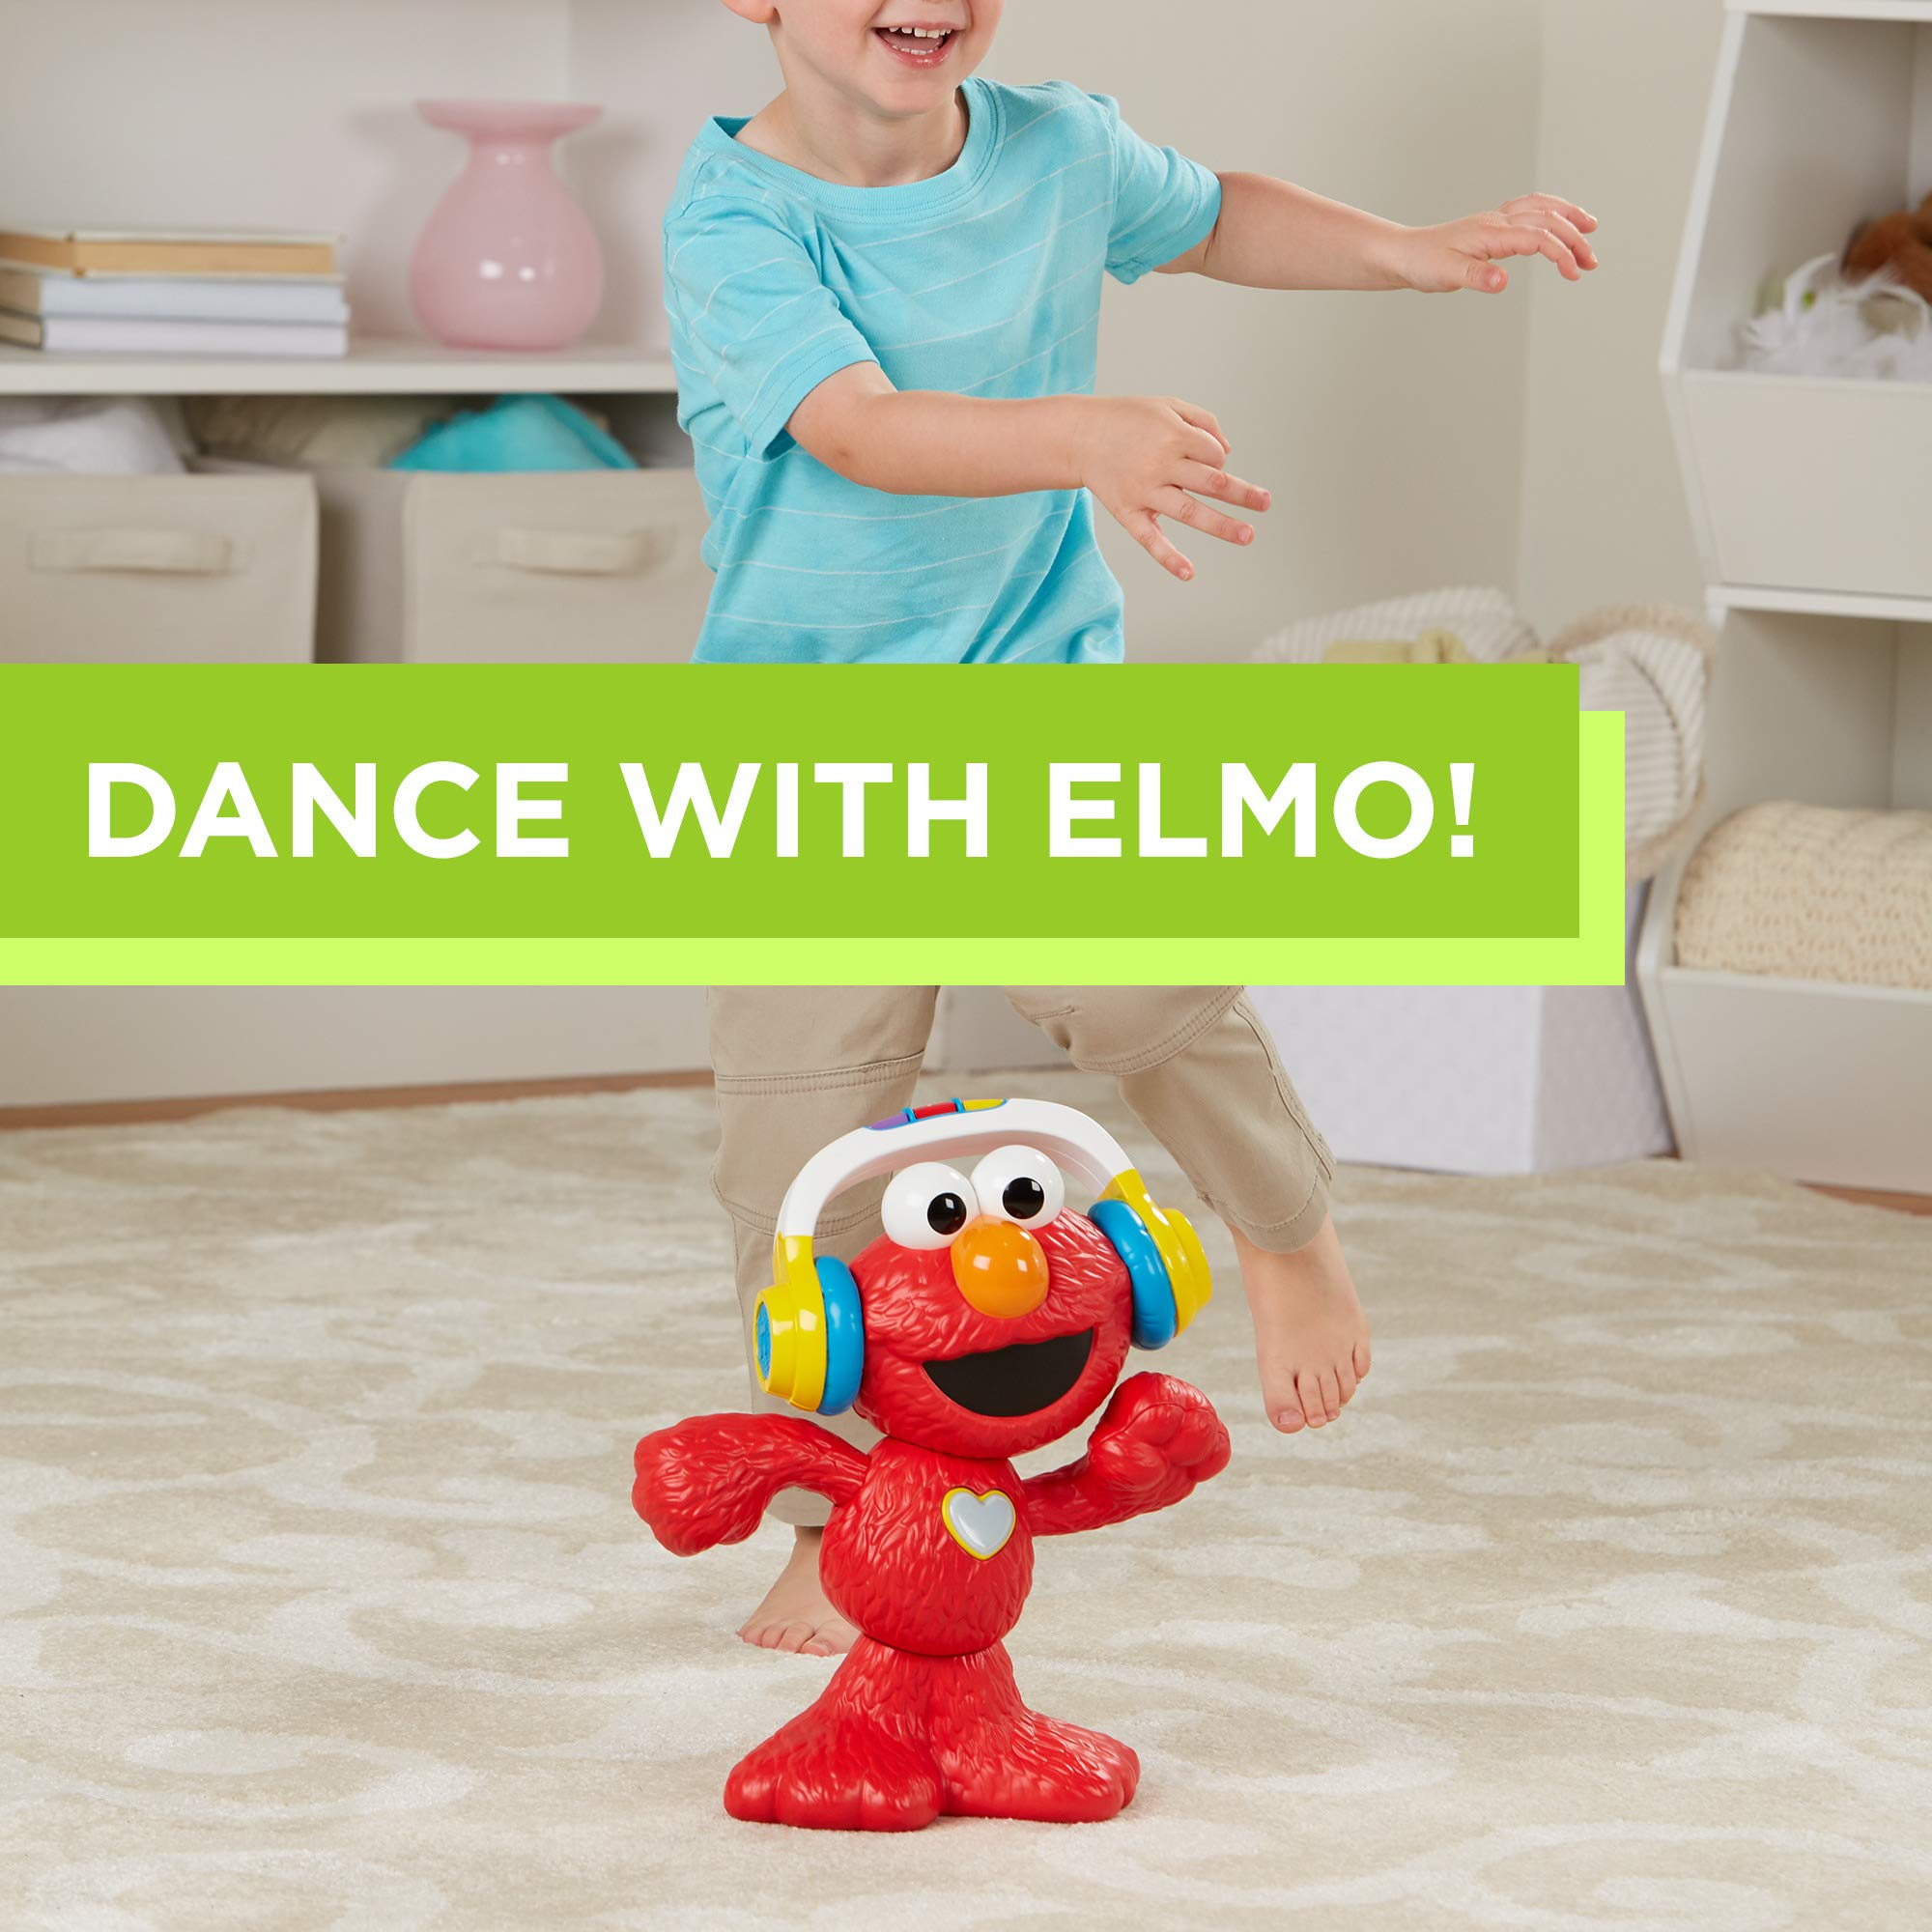 Sesame Street Let's Dance Elmo: 12-inch Elmo Toy that Sings and Dances, With 3 Musical Modes, Sesame Street Toy for Kids Ages 18 Months and Up by Sesame Street (Image #3)